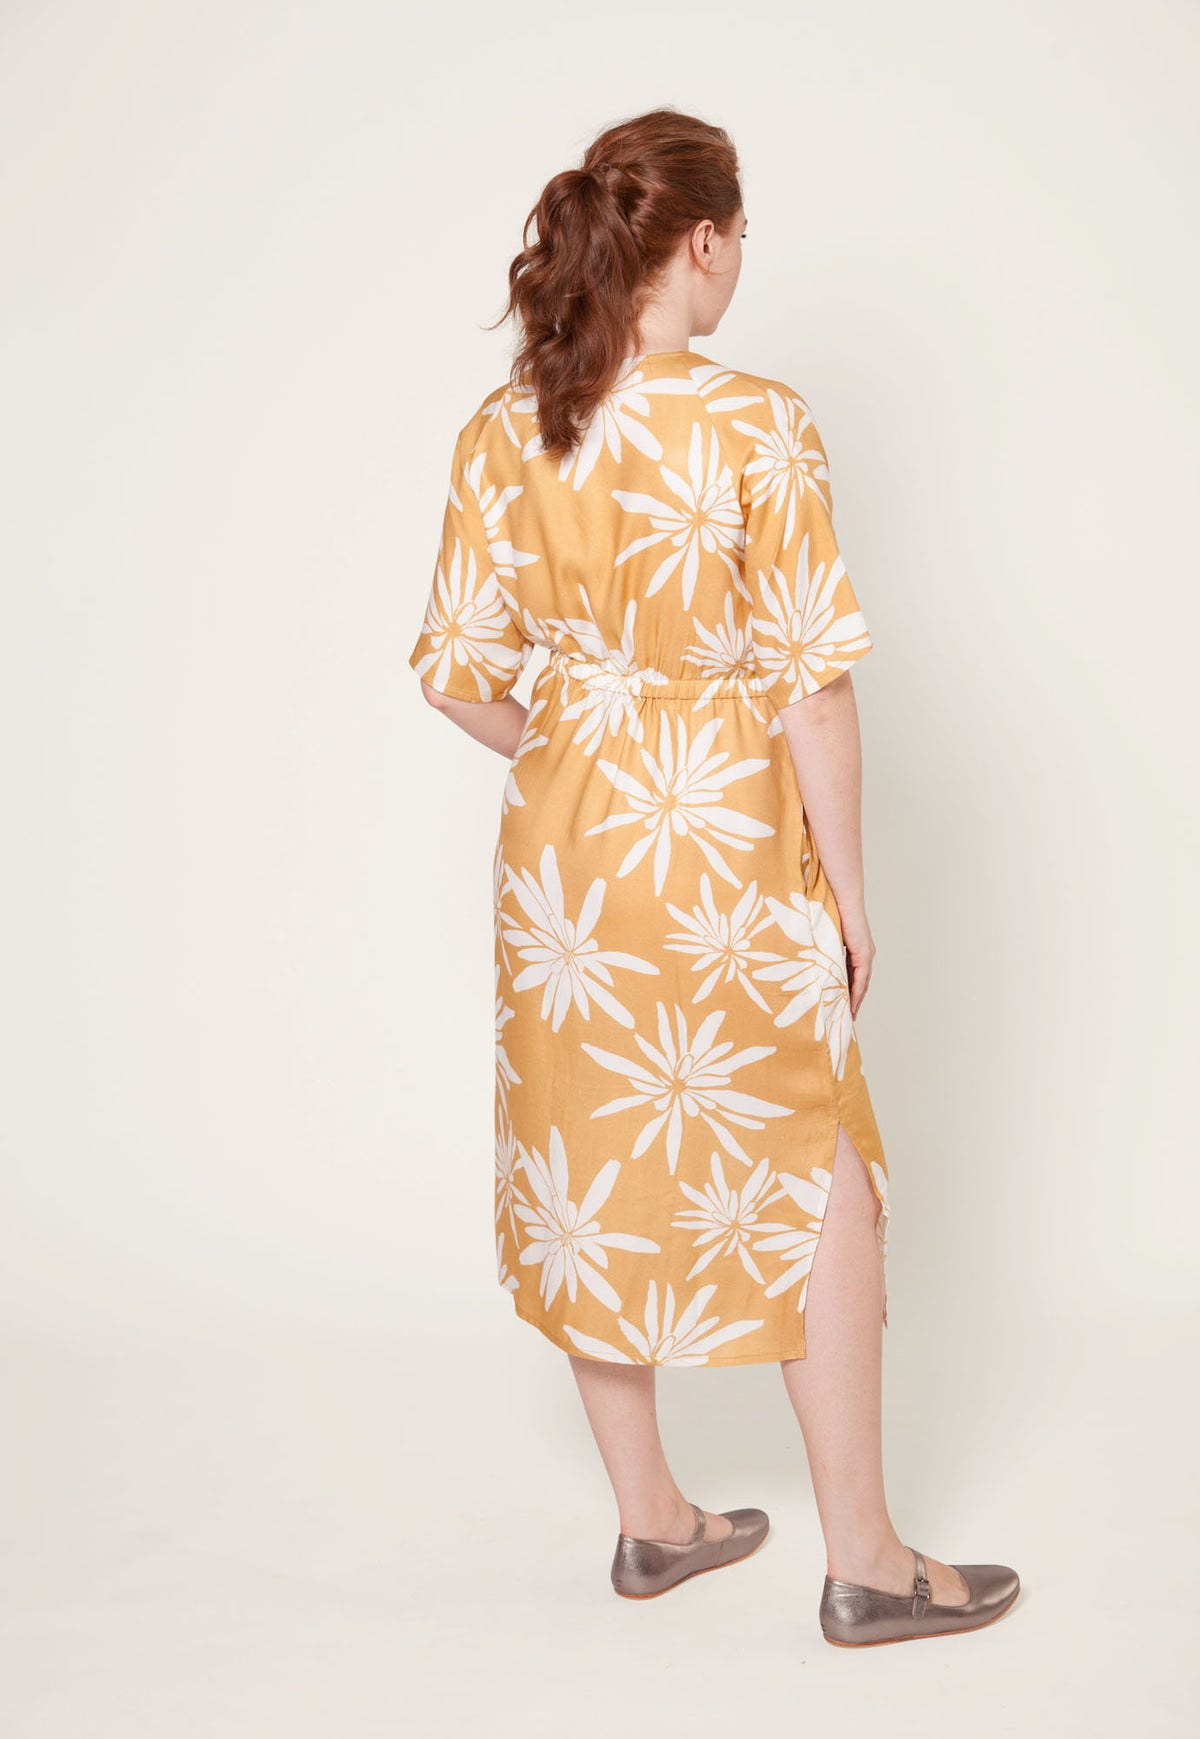 Gracie Dress - Mustard Yam Daisy